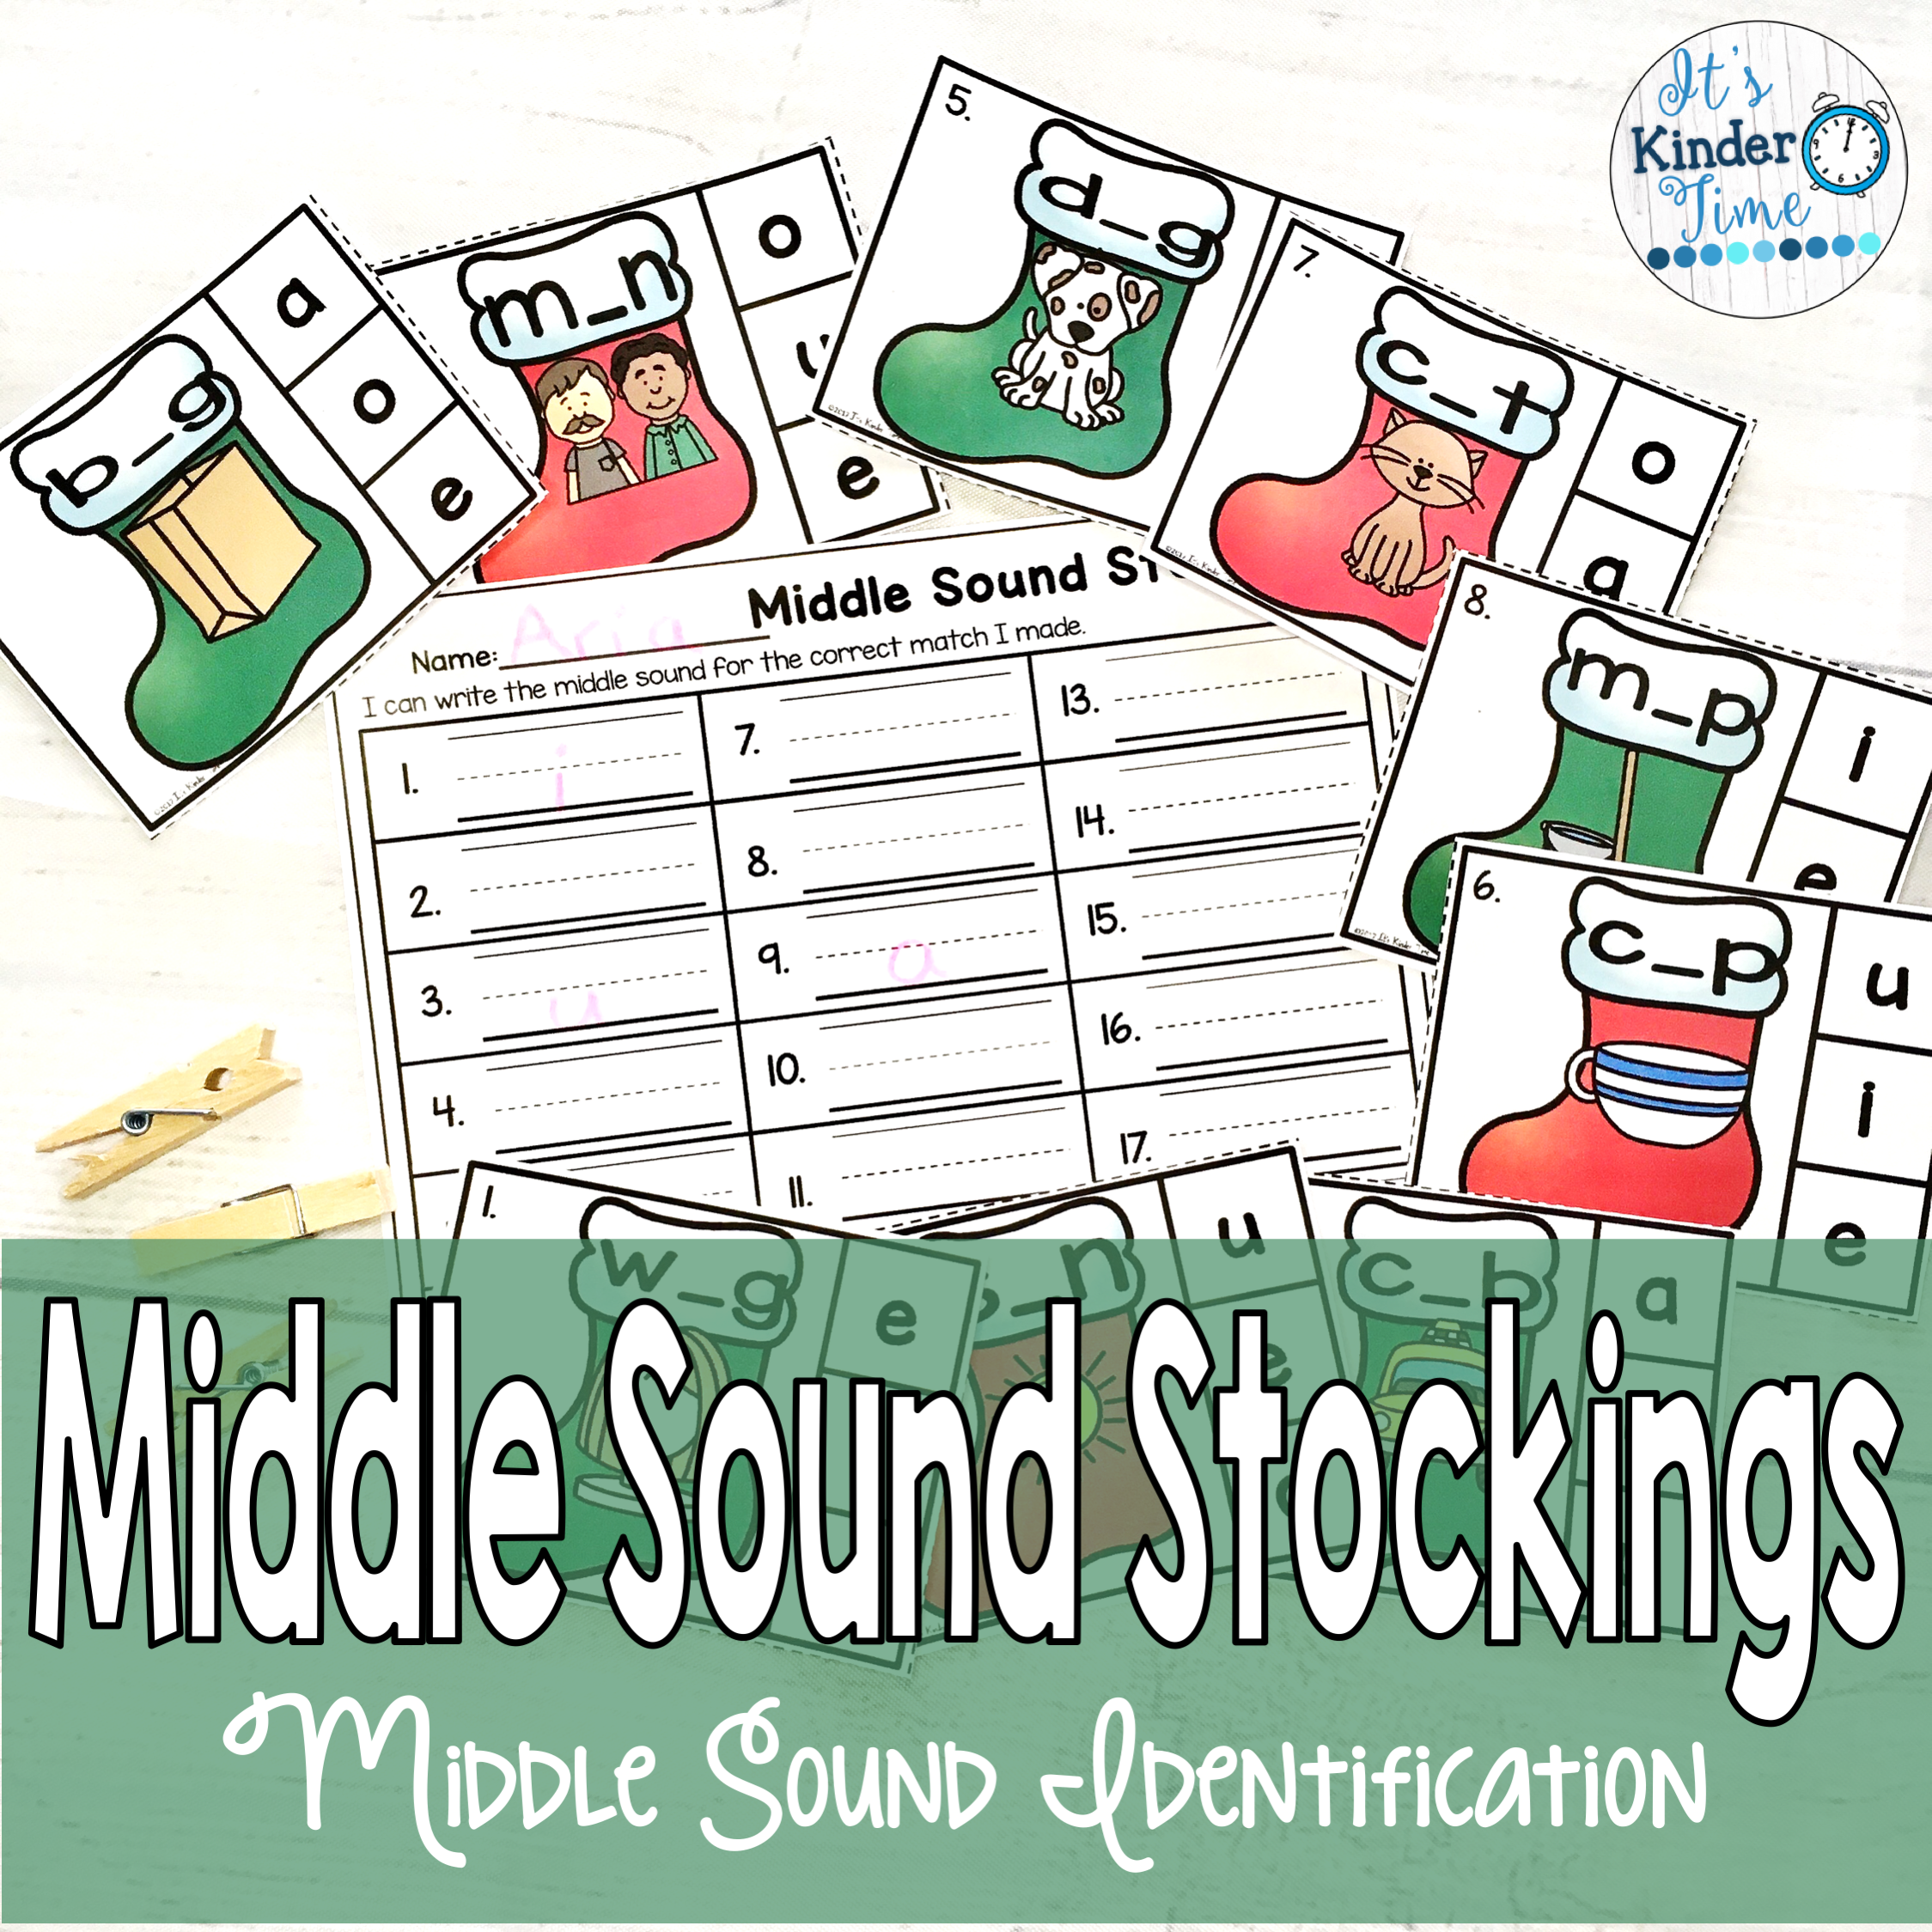 Middle Sound Stockings